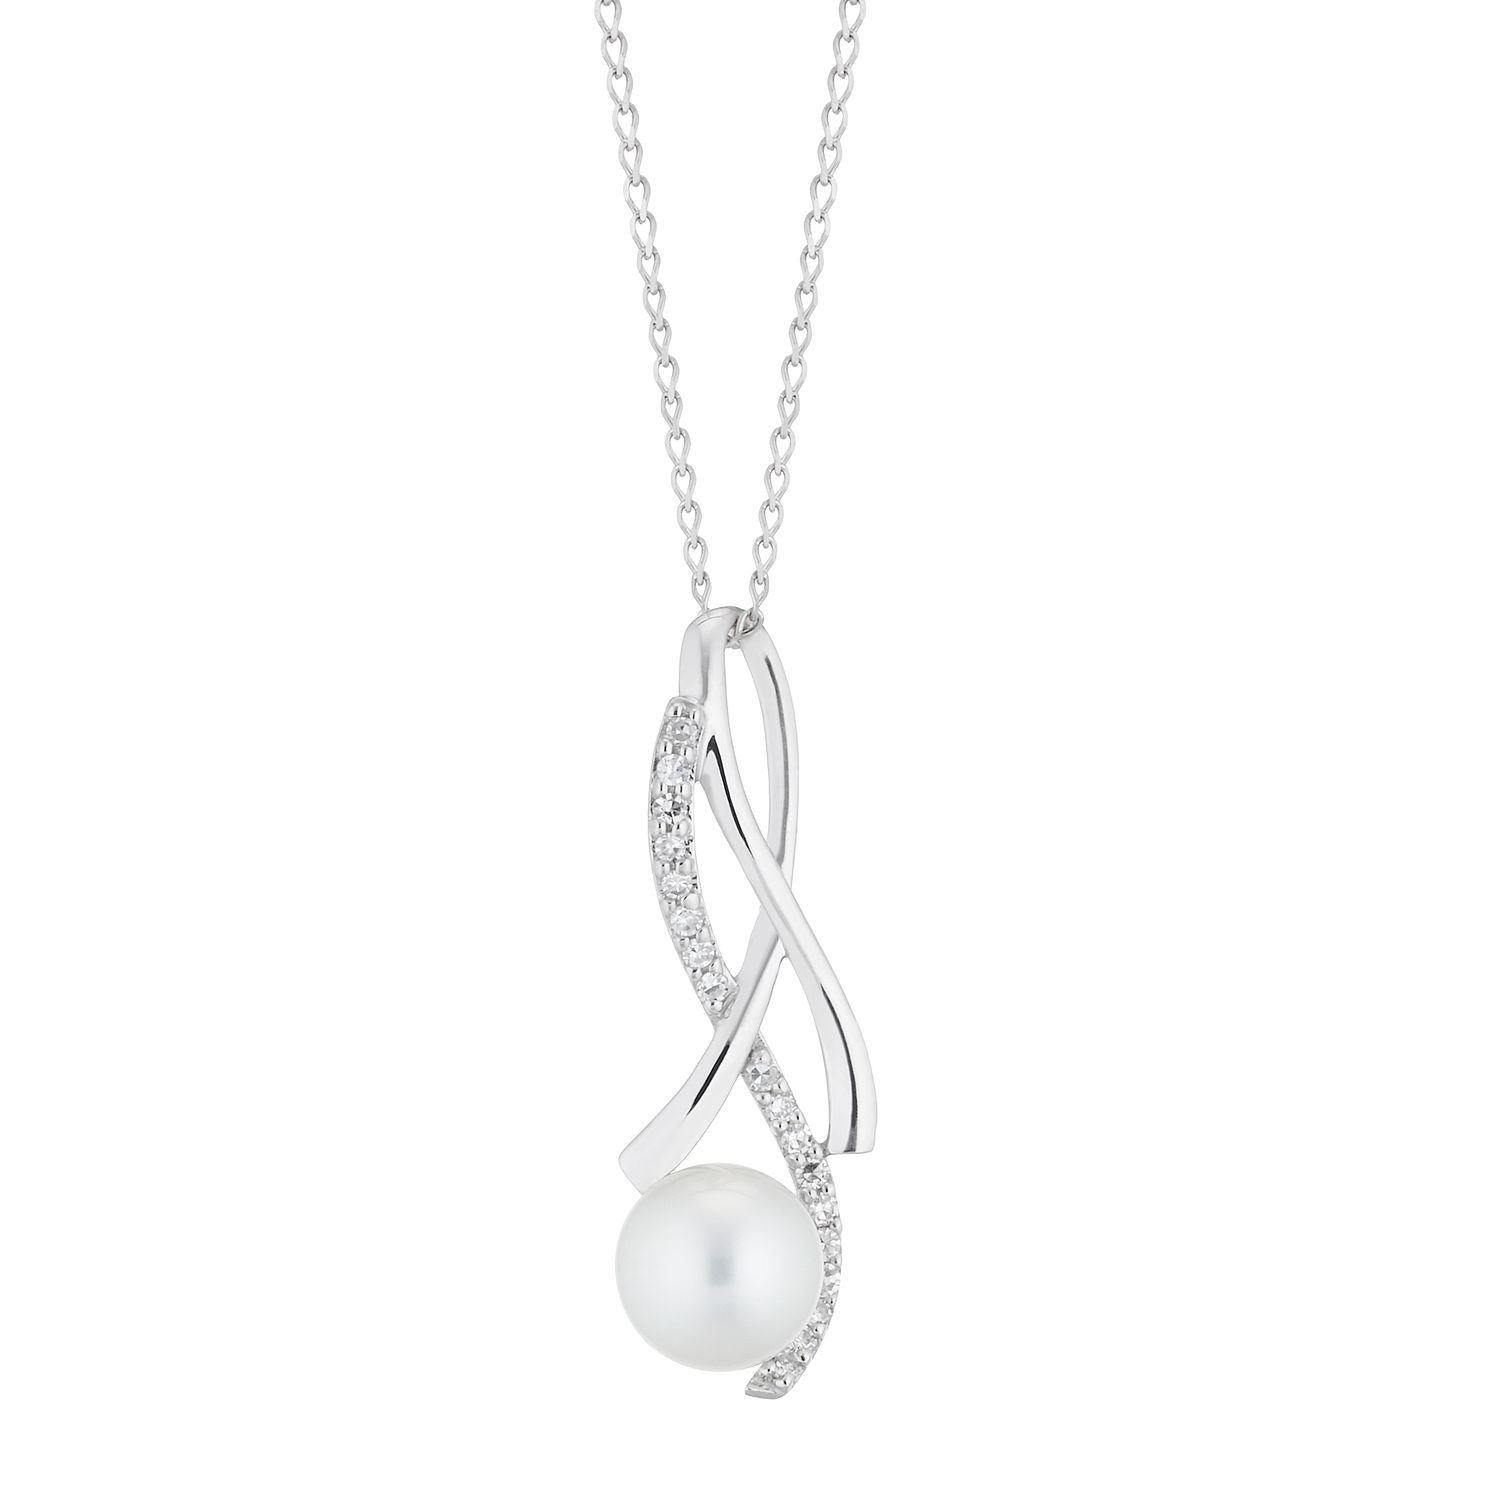 9ct White Gold Cultured Freshwater Pearl & Diamond Pendant - Product number 4528425